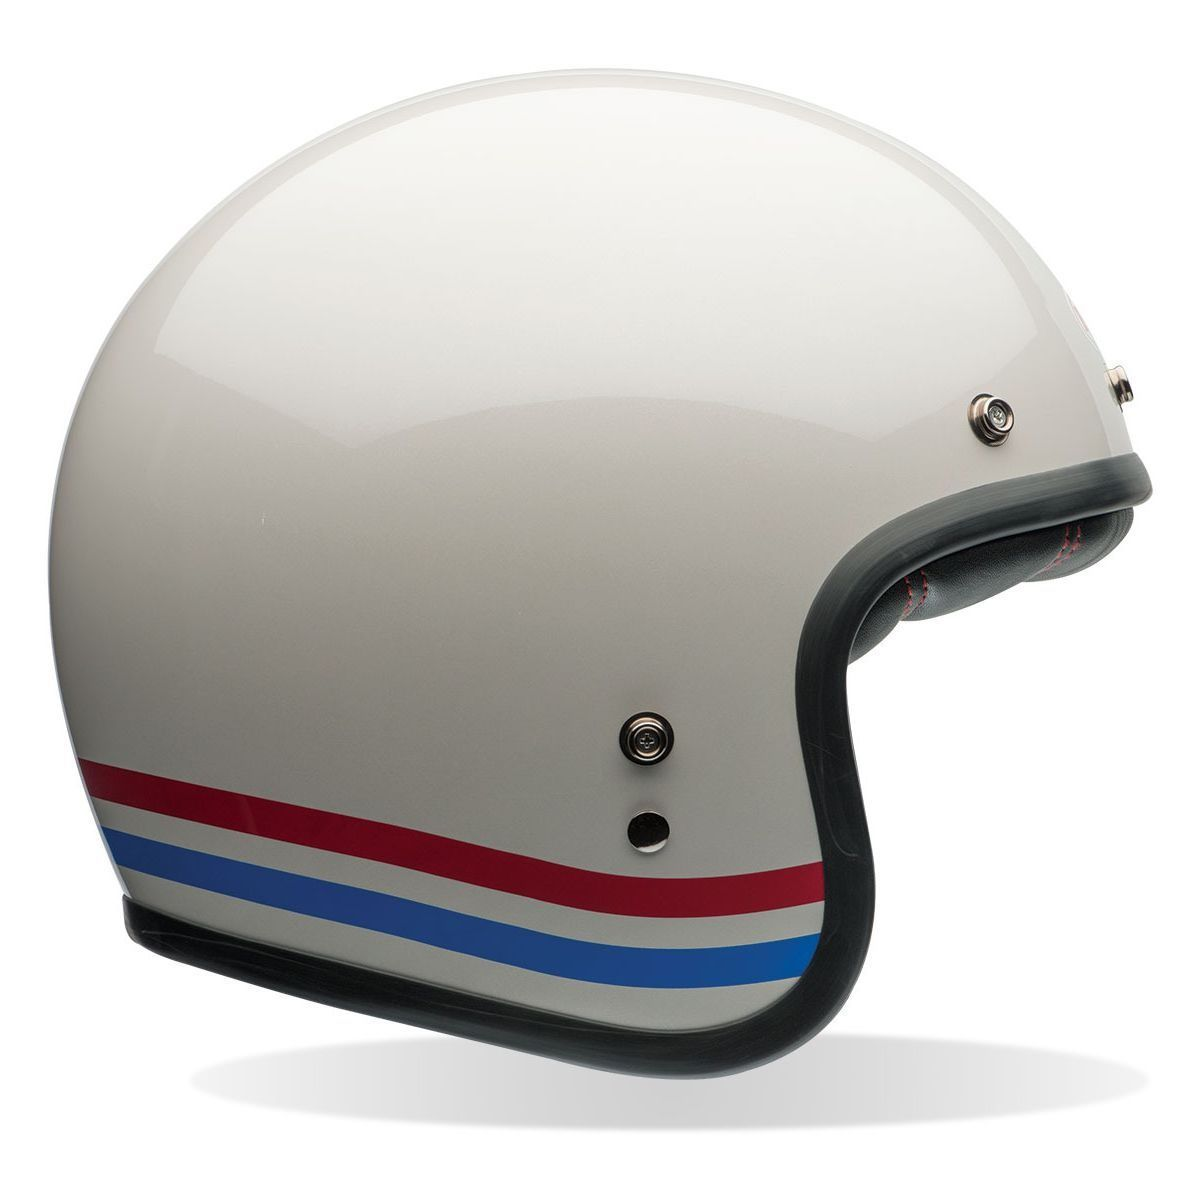 The first motorcycle helmet was co-developed in 1914 by a British doctor who ran the medical facilities at the Brooklands race track. After seeing countless head injuries caused by accidents during races he contracted a local man to build a hard shellac helmet with a slightly softer internal canvas lining. These early helmets weren't designed...